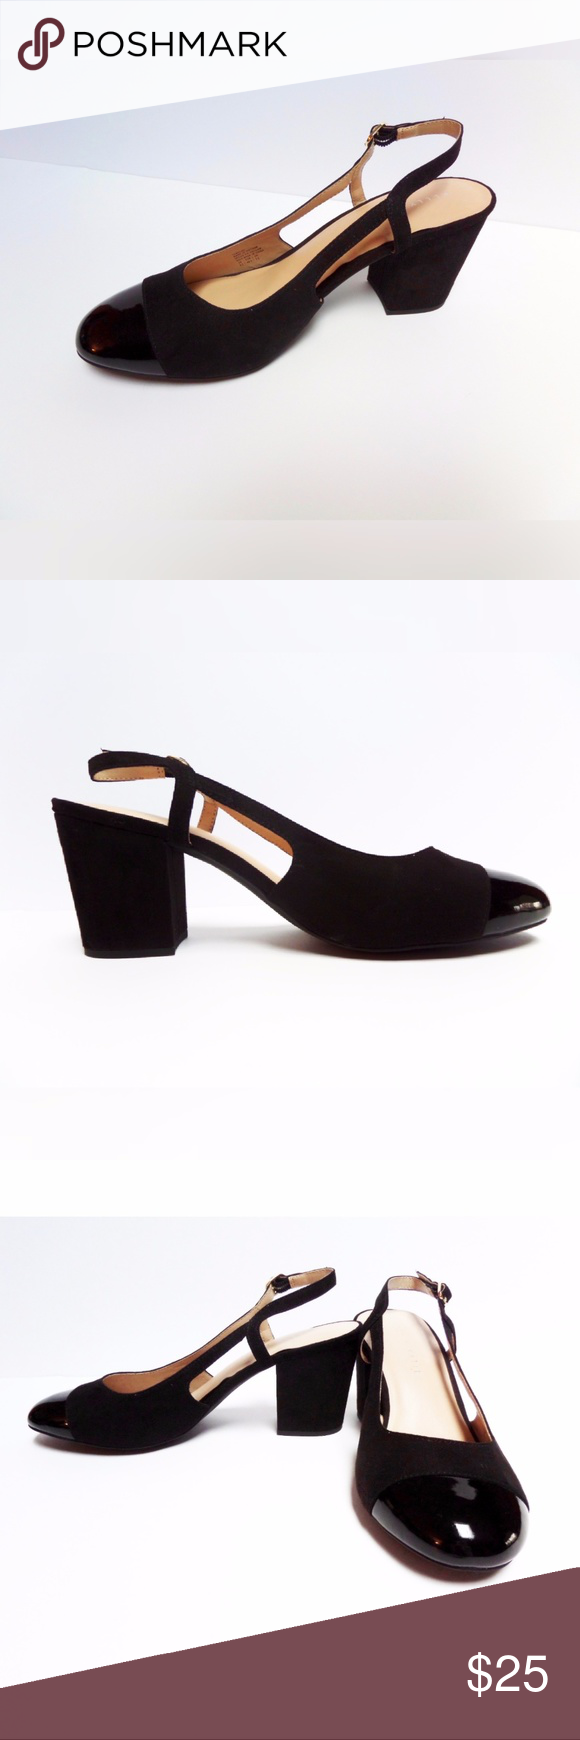 a445de9ede48 Black Slingback Fashionable Block Heel